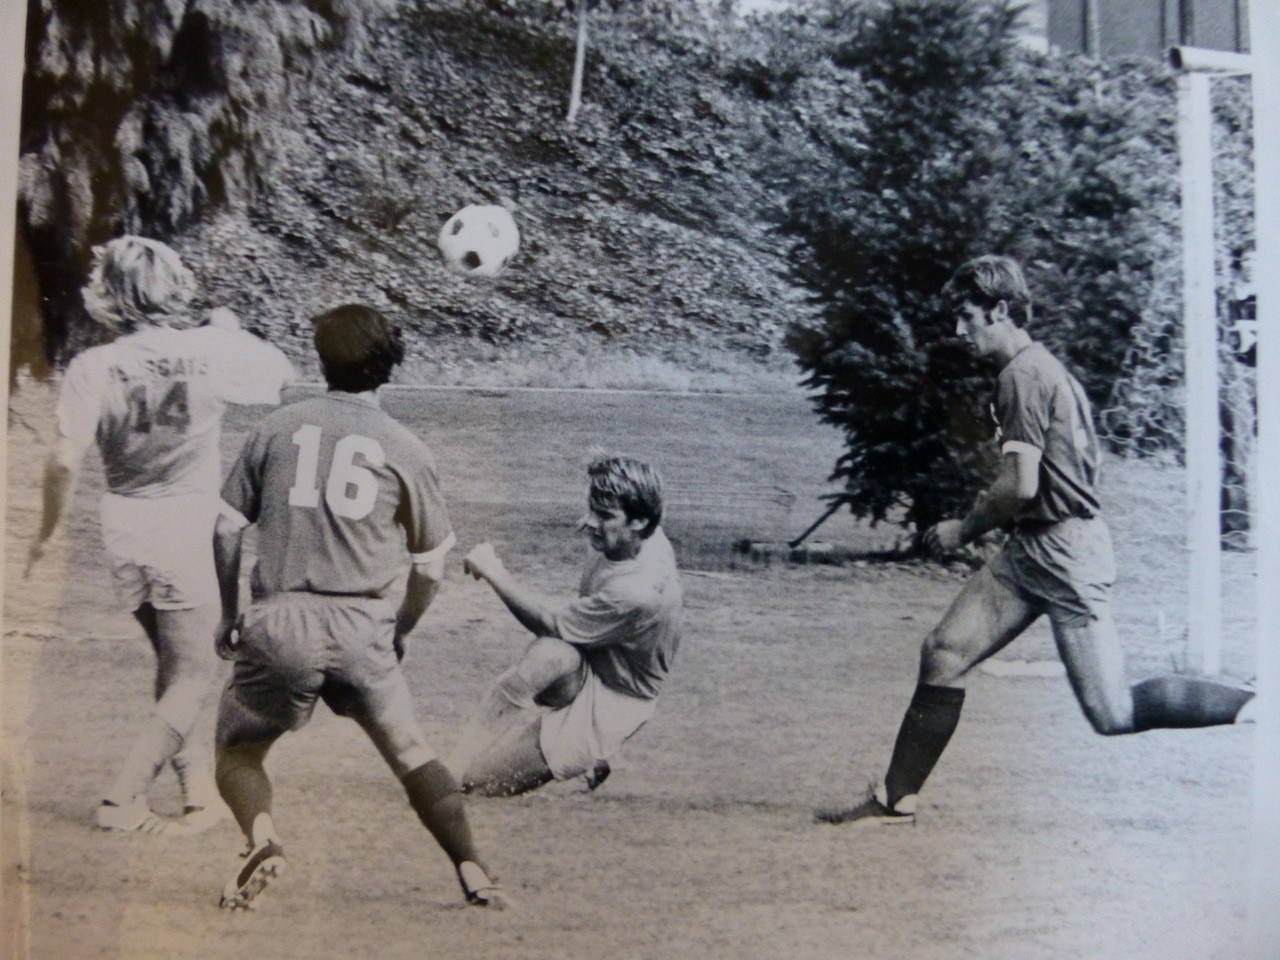 Willamette Years: More soccer!